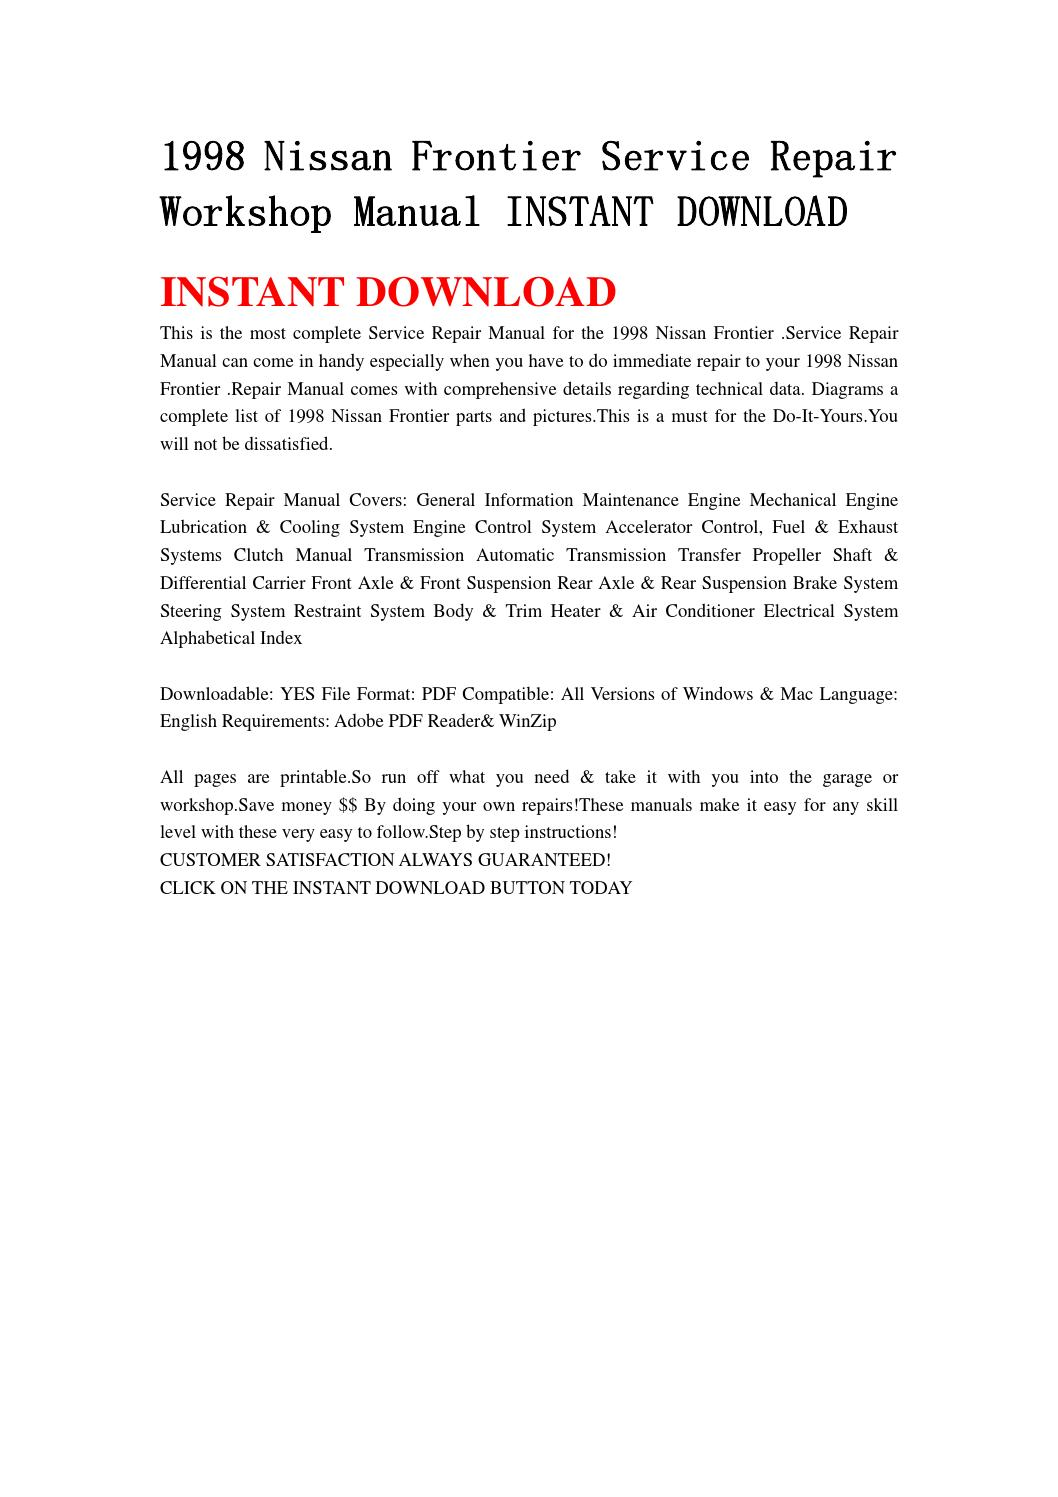 1998 nissan frontier service repair workshop manual instant download by  ujsmefmmes - issuu